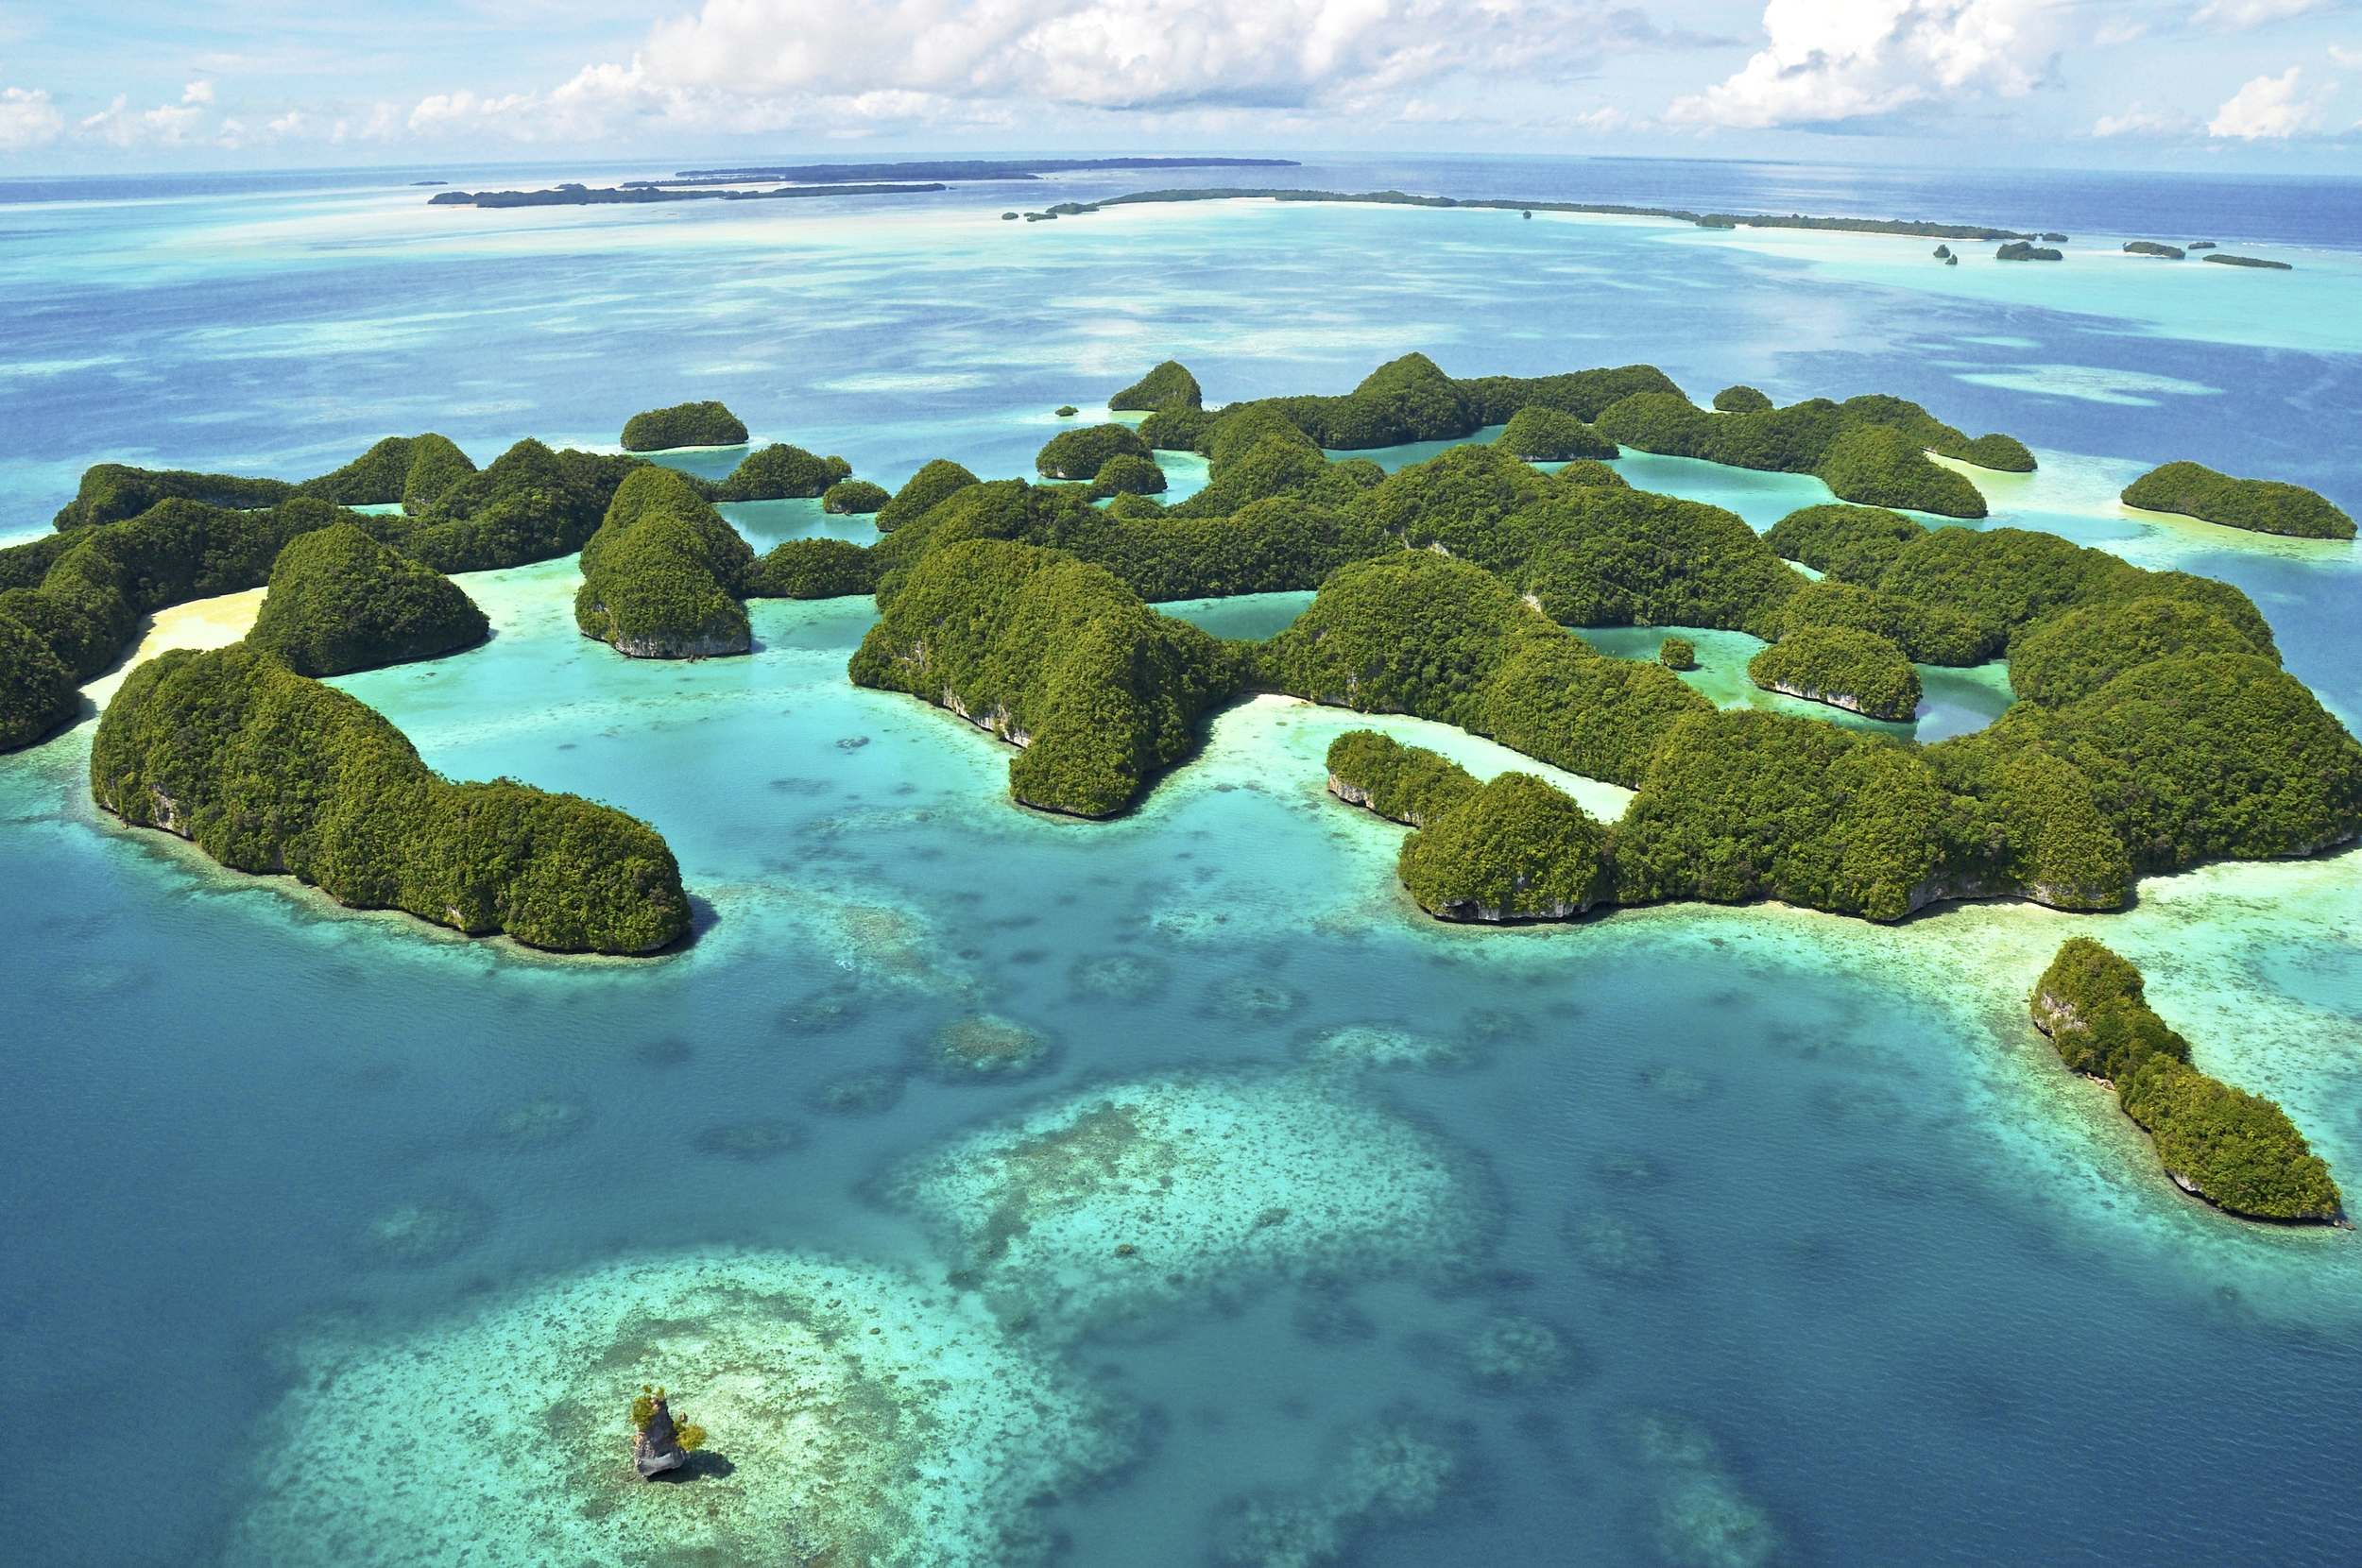 6. Sheshunoff - Palau - From Air  (1 of 2) - Rights Not Purchased Yet.jpg